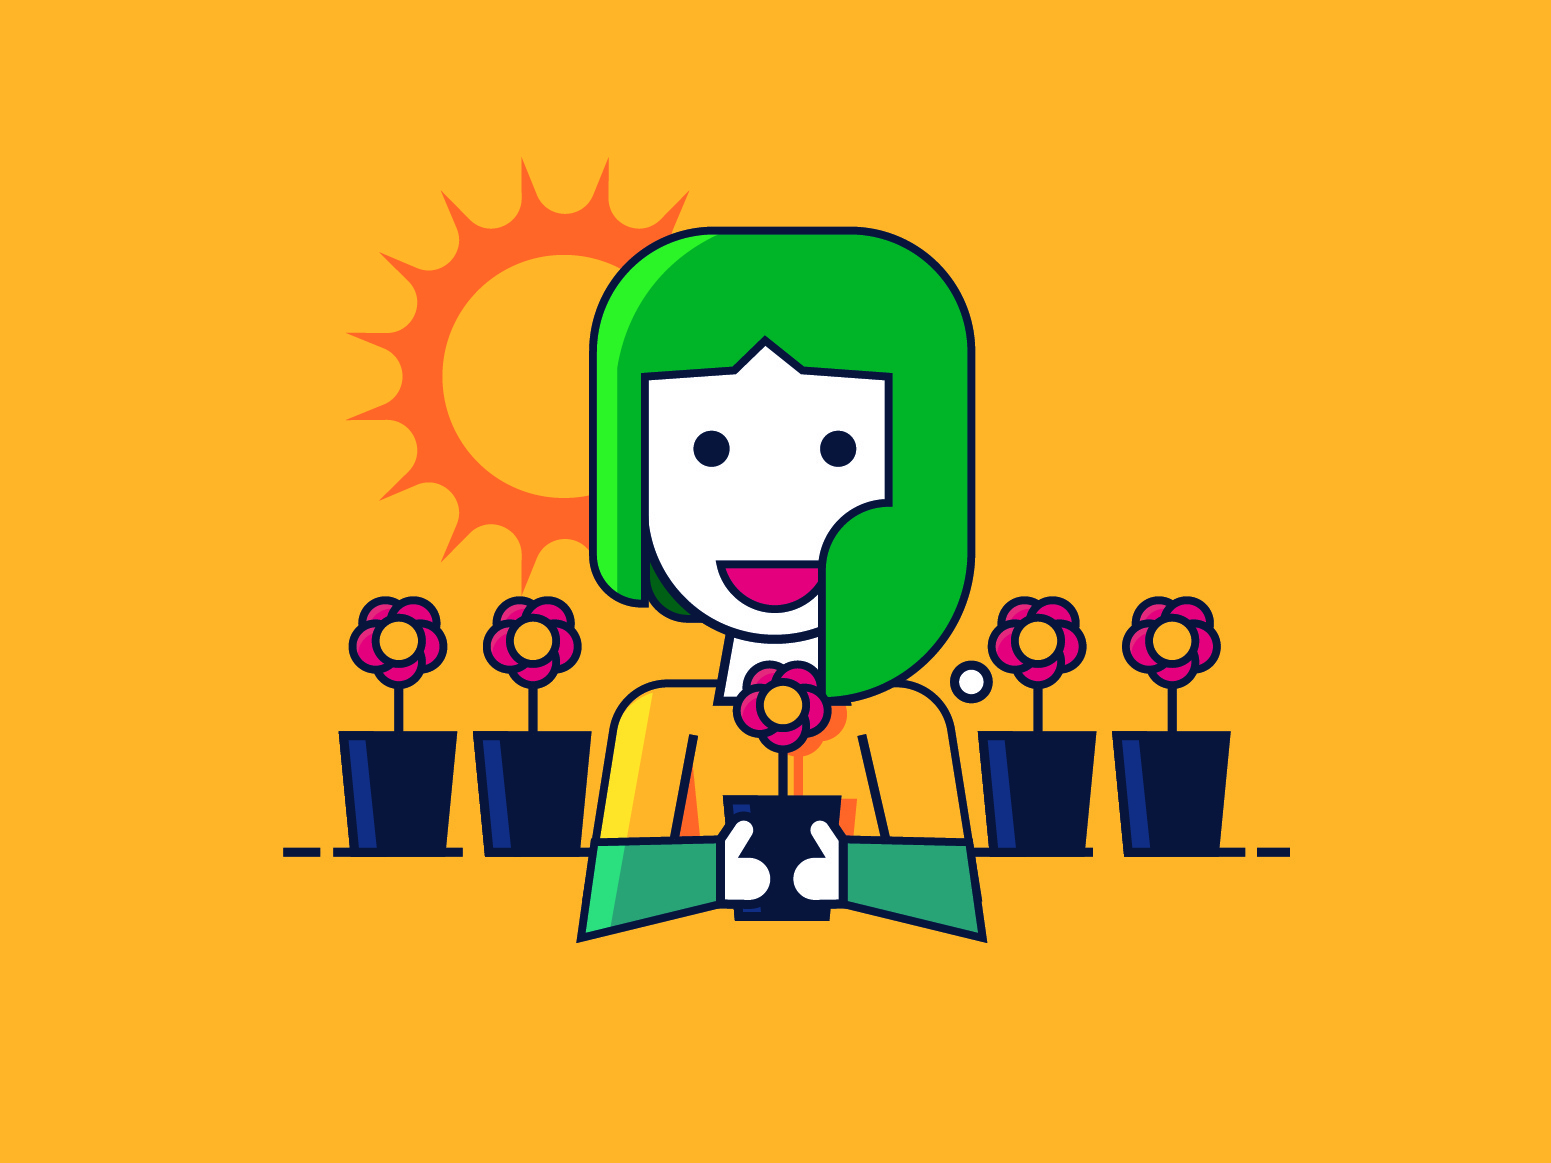 SunFlower animation flat minimal vector design illustration